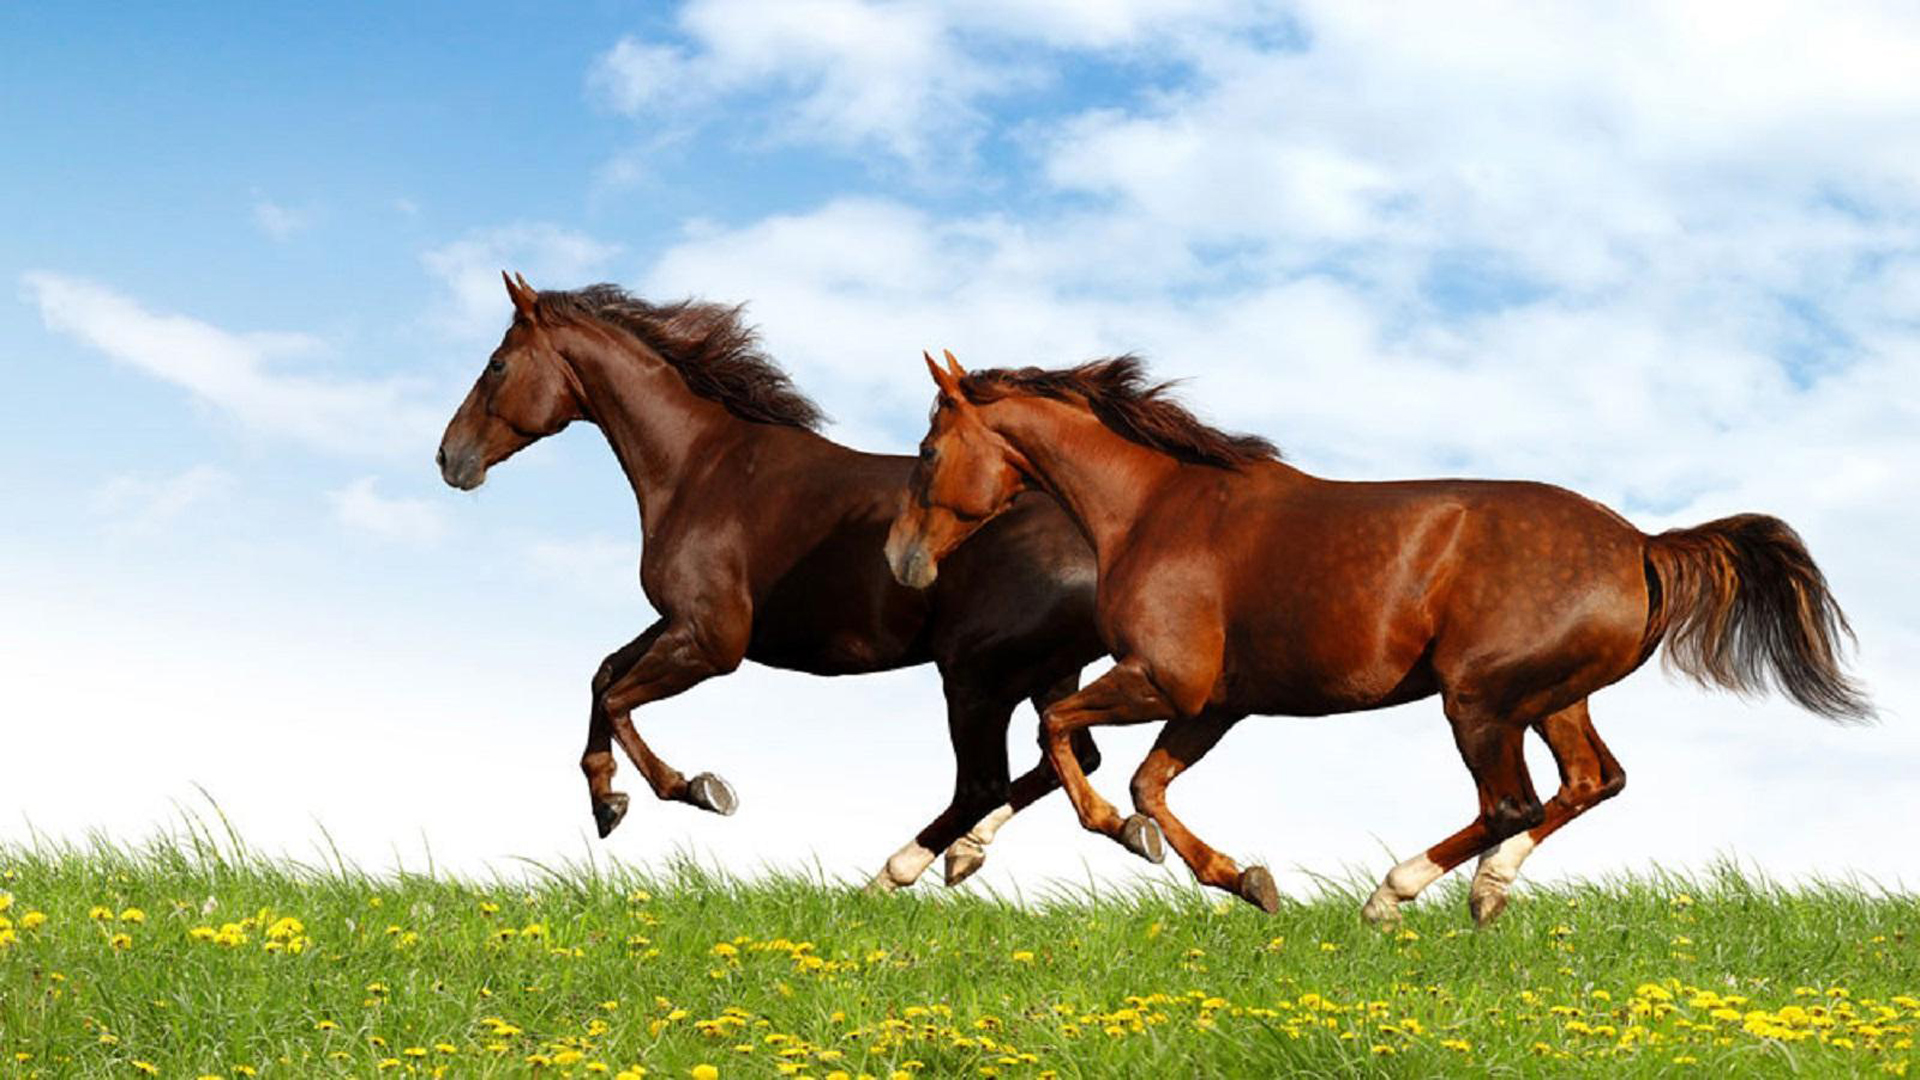 Brown-and-red-horse-running-in-a-field-of-green-grass-desktop-wallpaper-HD